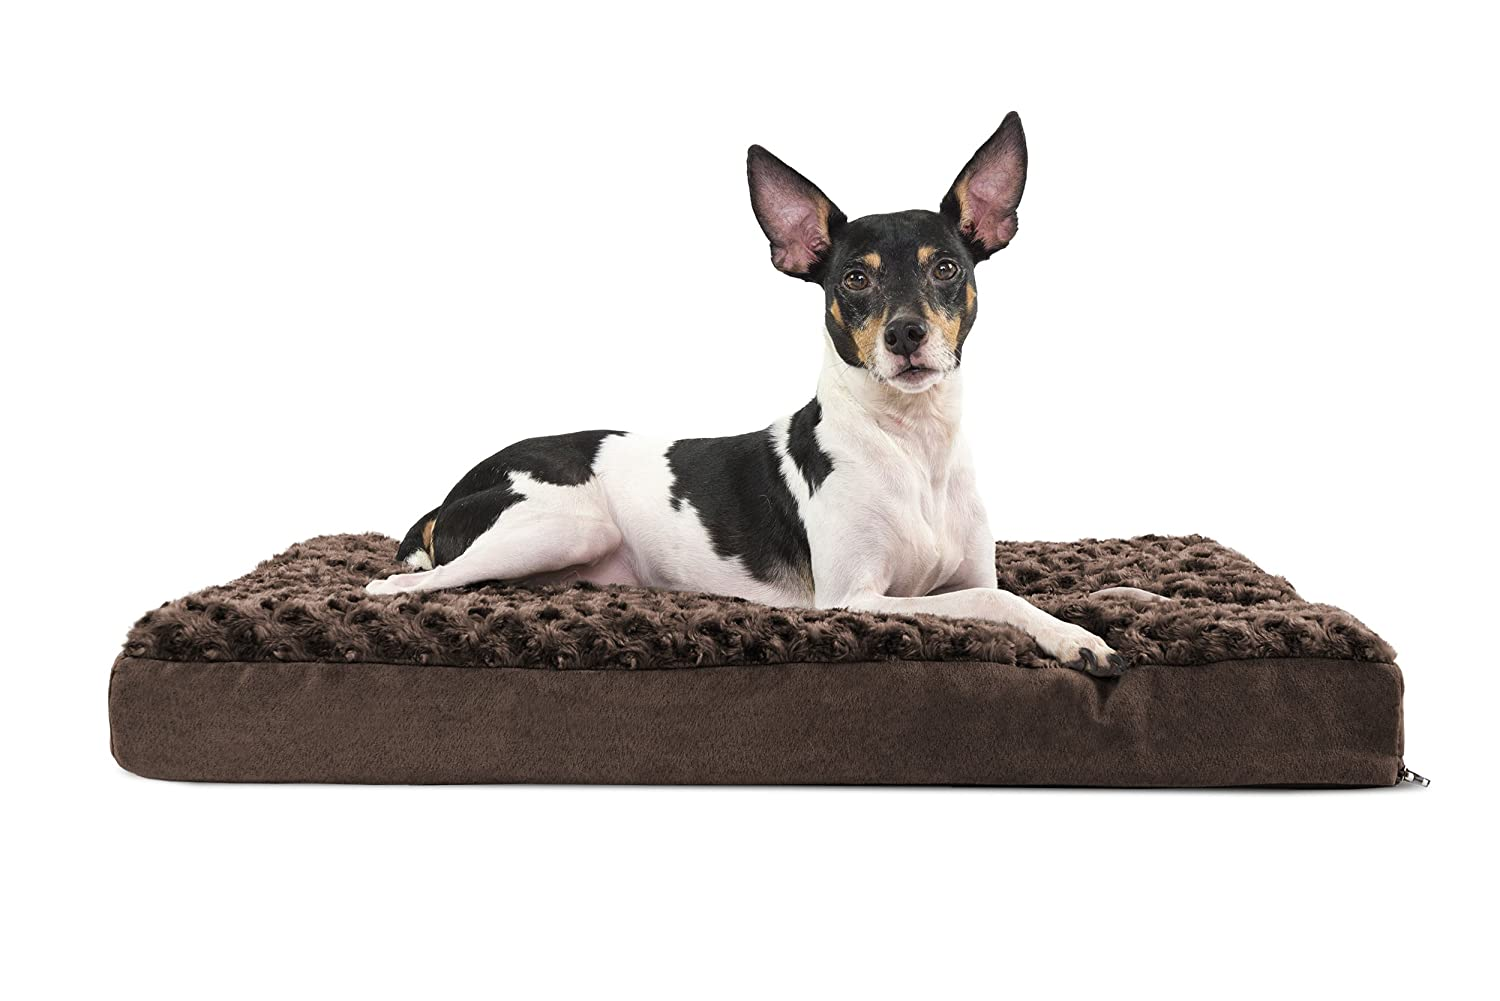 Chocolate MediumFurhaven Pet Products Furhaven Pet Nap Terry and Suede Deluxe 27 by 36Inch Memory Foam Pet Bed, Large, Forest